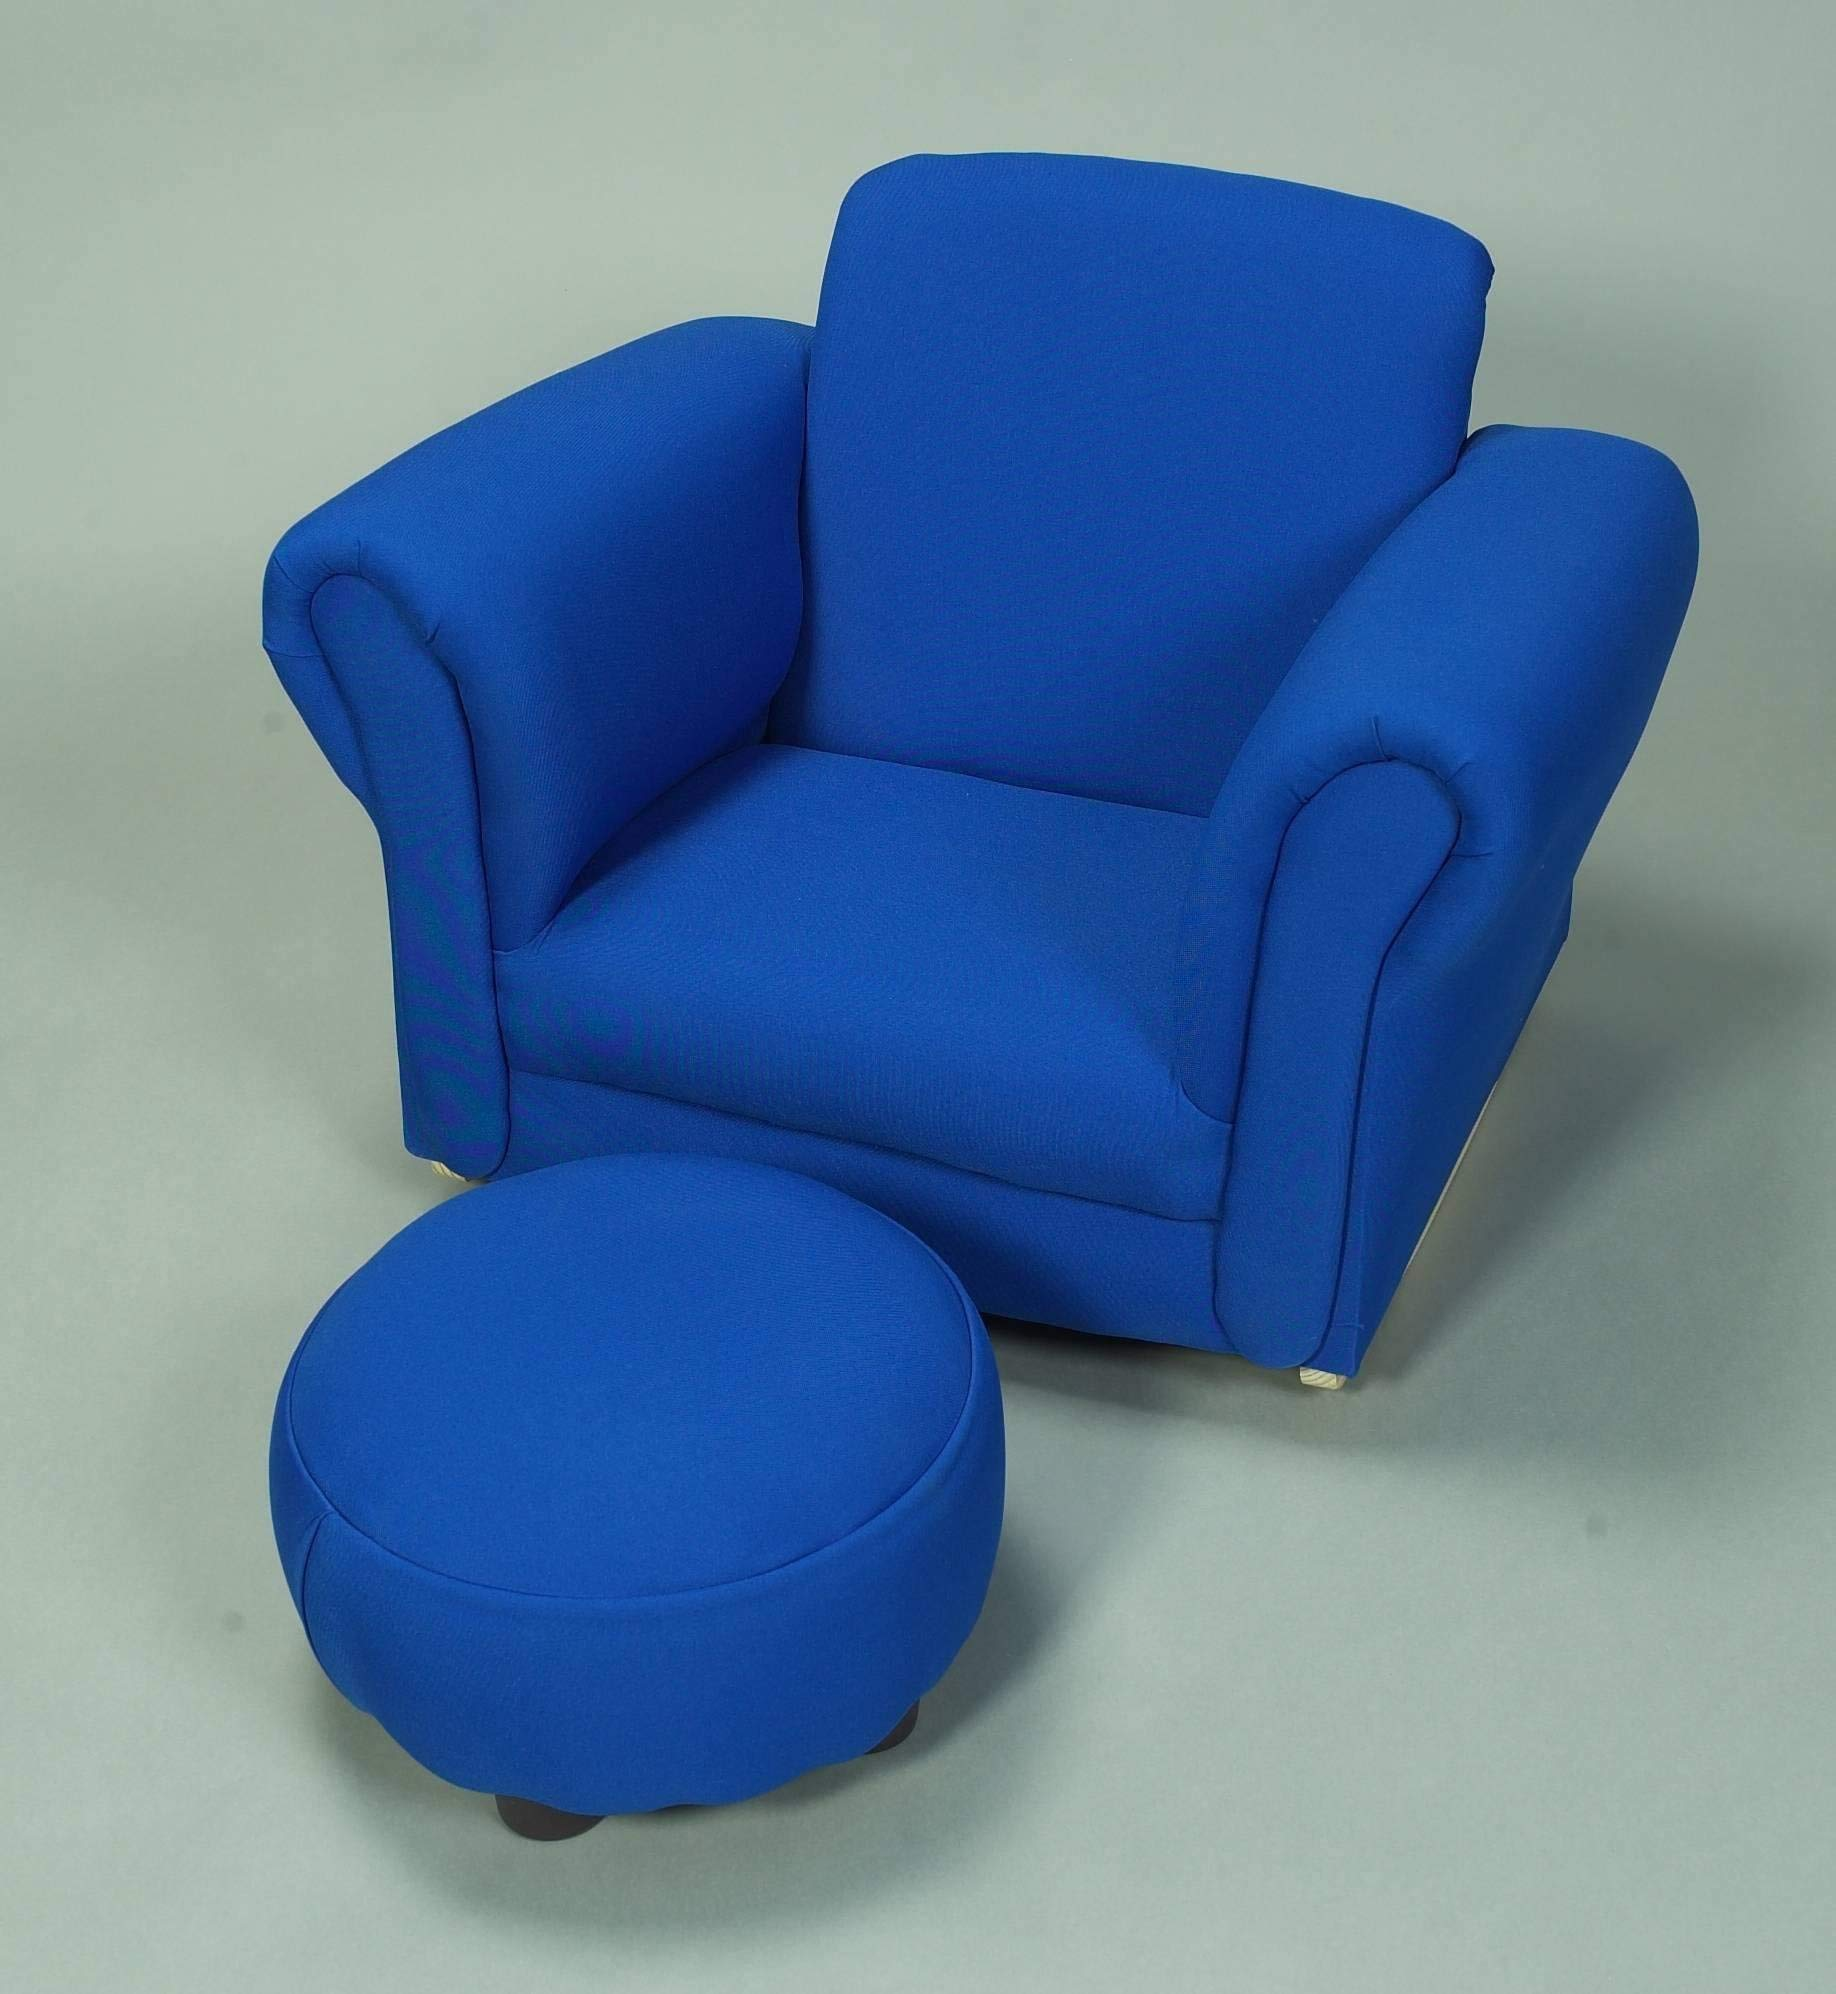 Gift Mark 6715B Upholstered Rocking Chair and Ottoman, Blue by Gift Mark